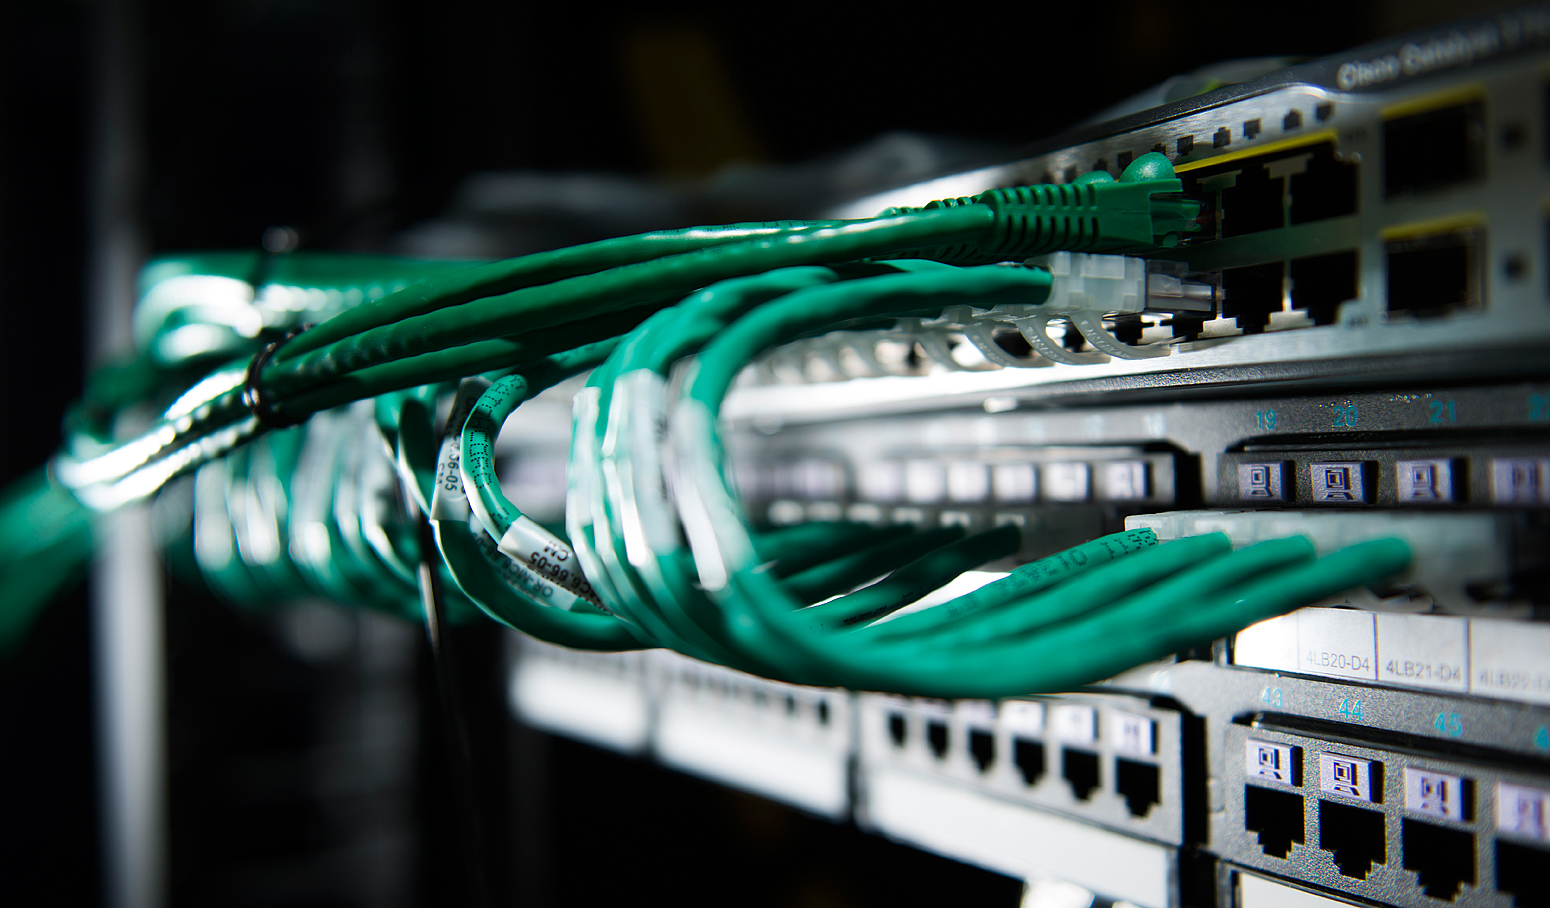 cables-on-switch-communications